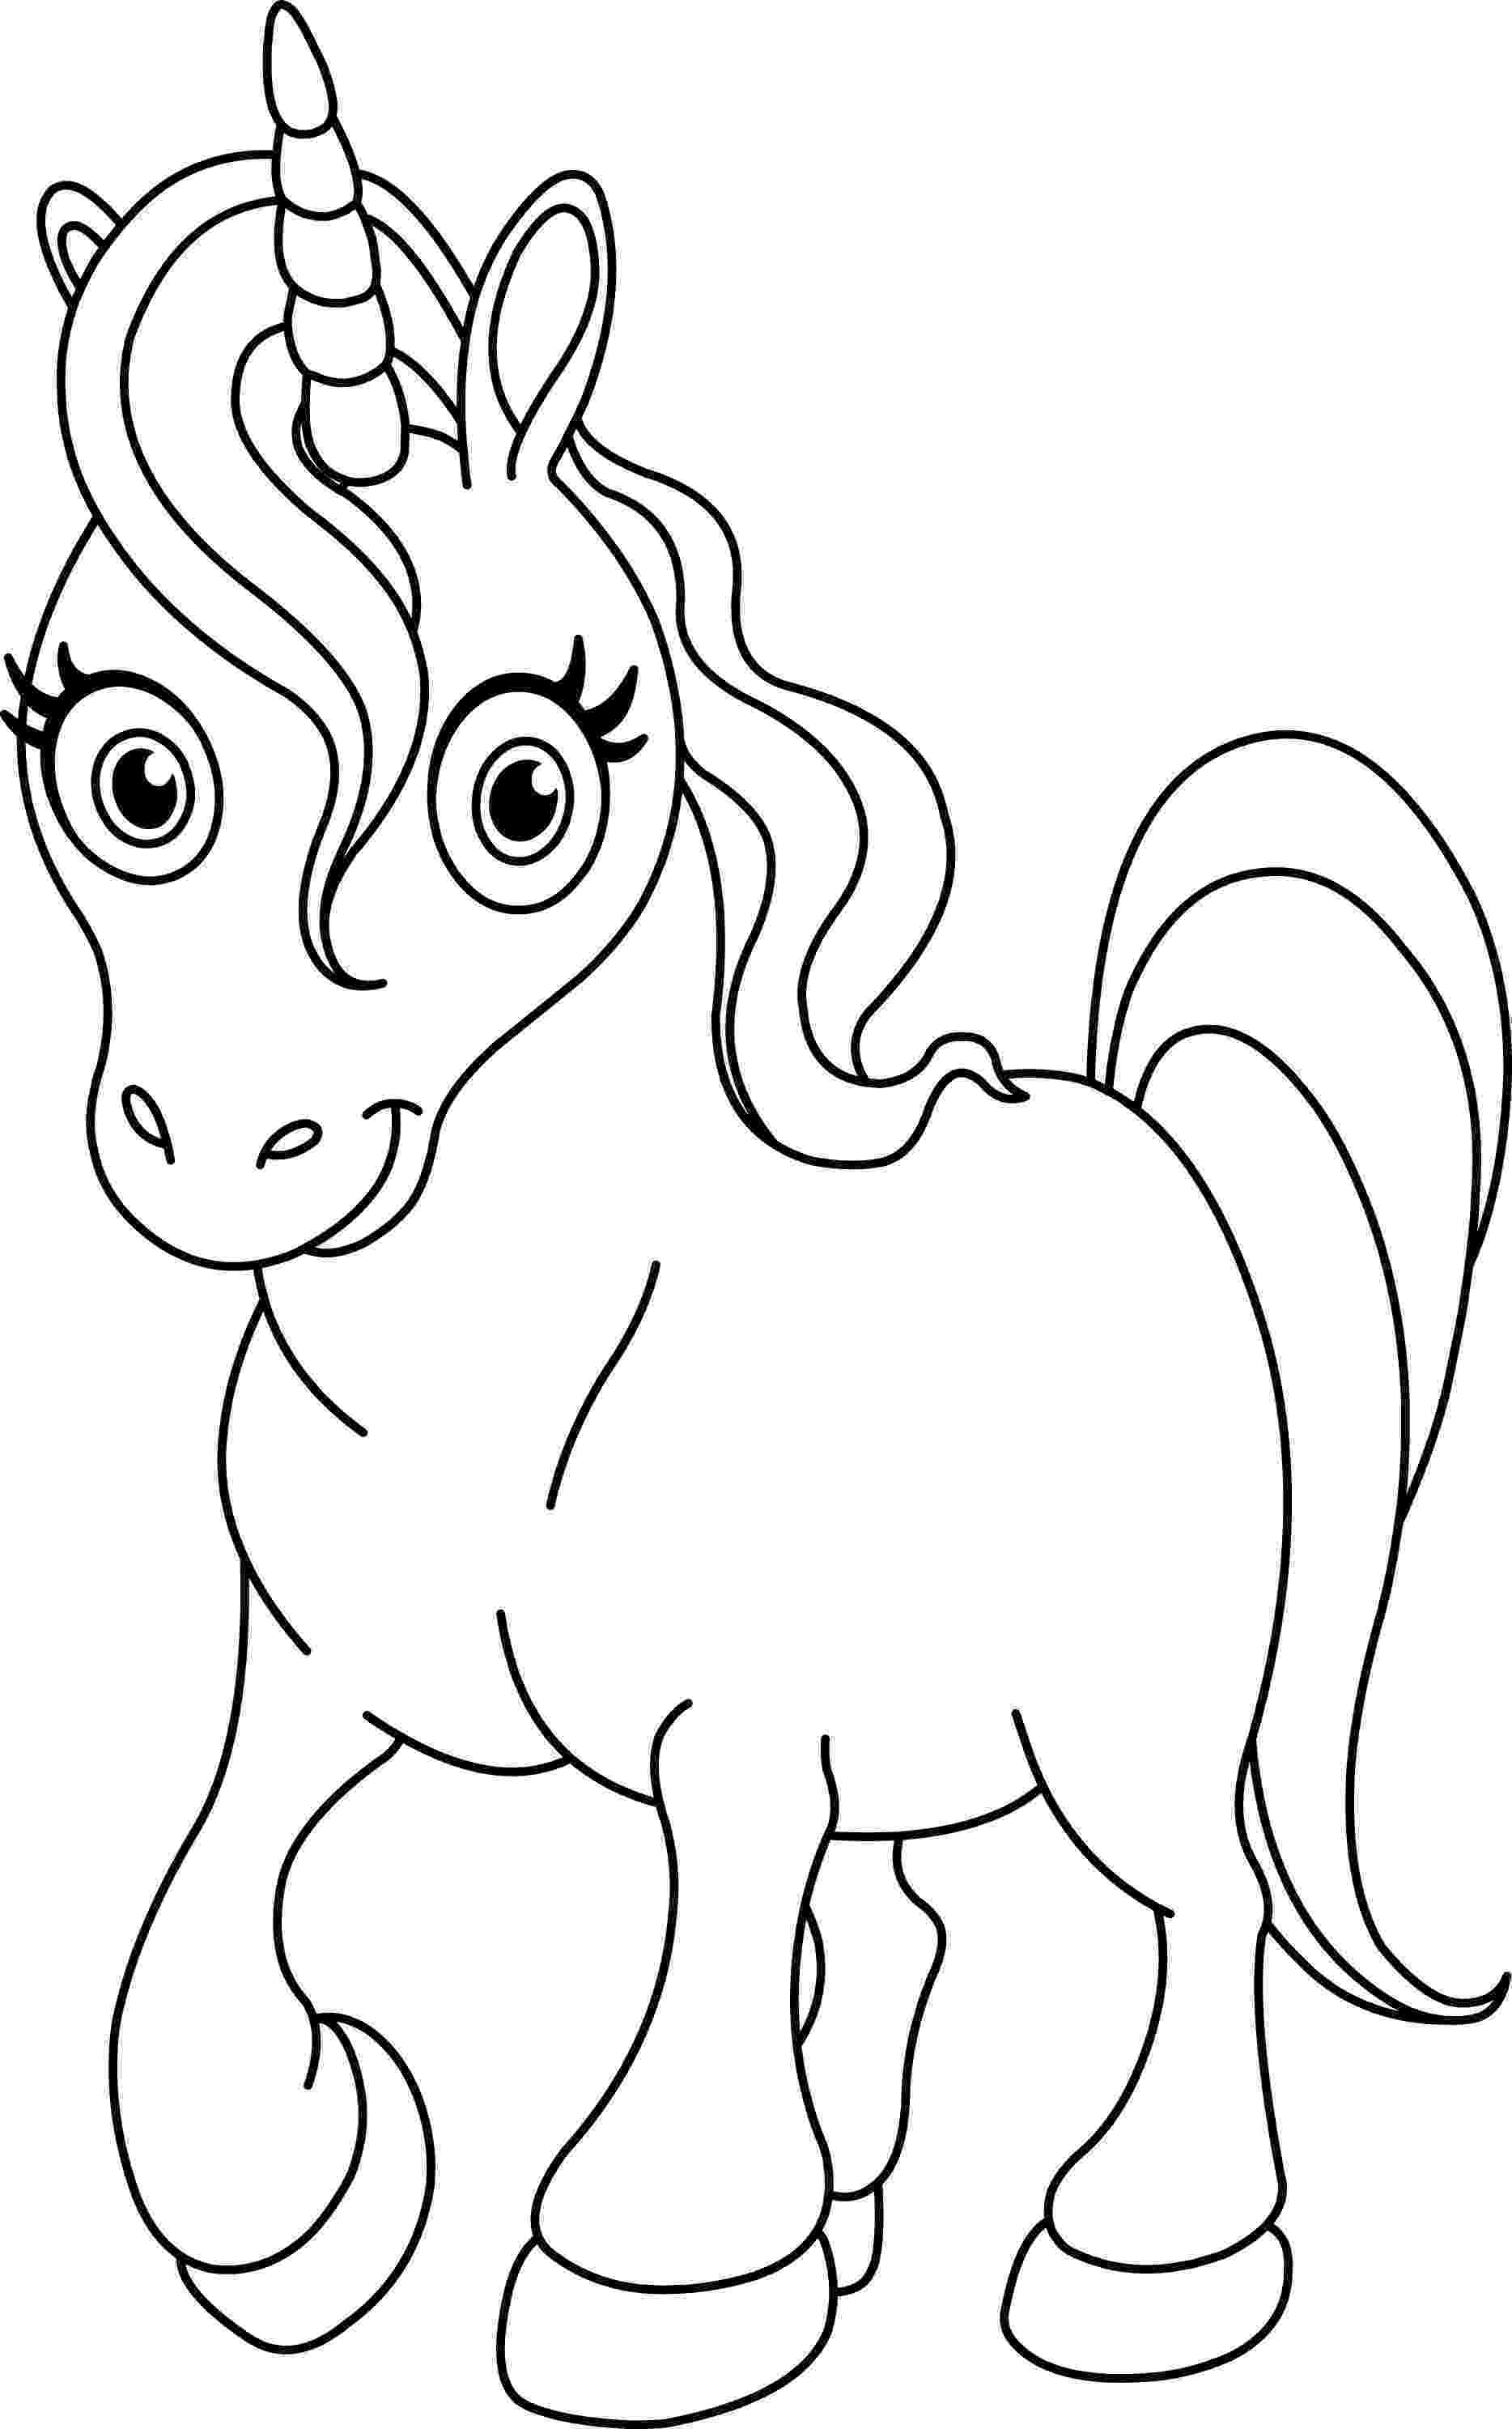 printable unicorn unicorn horse coloring pages unicorn pony coloring pages printable unicorn